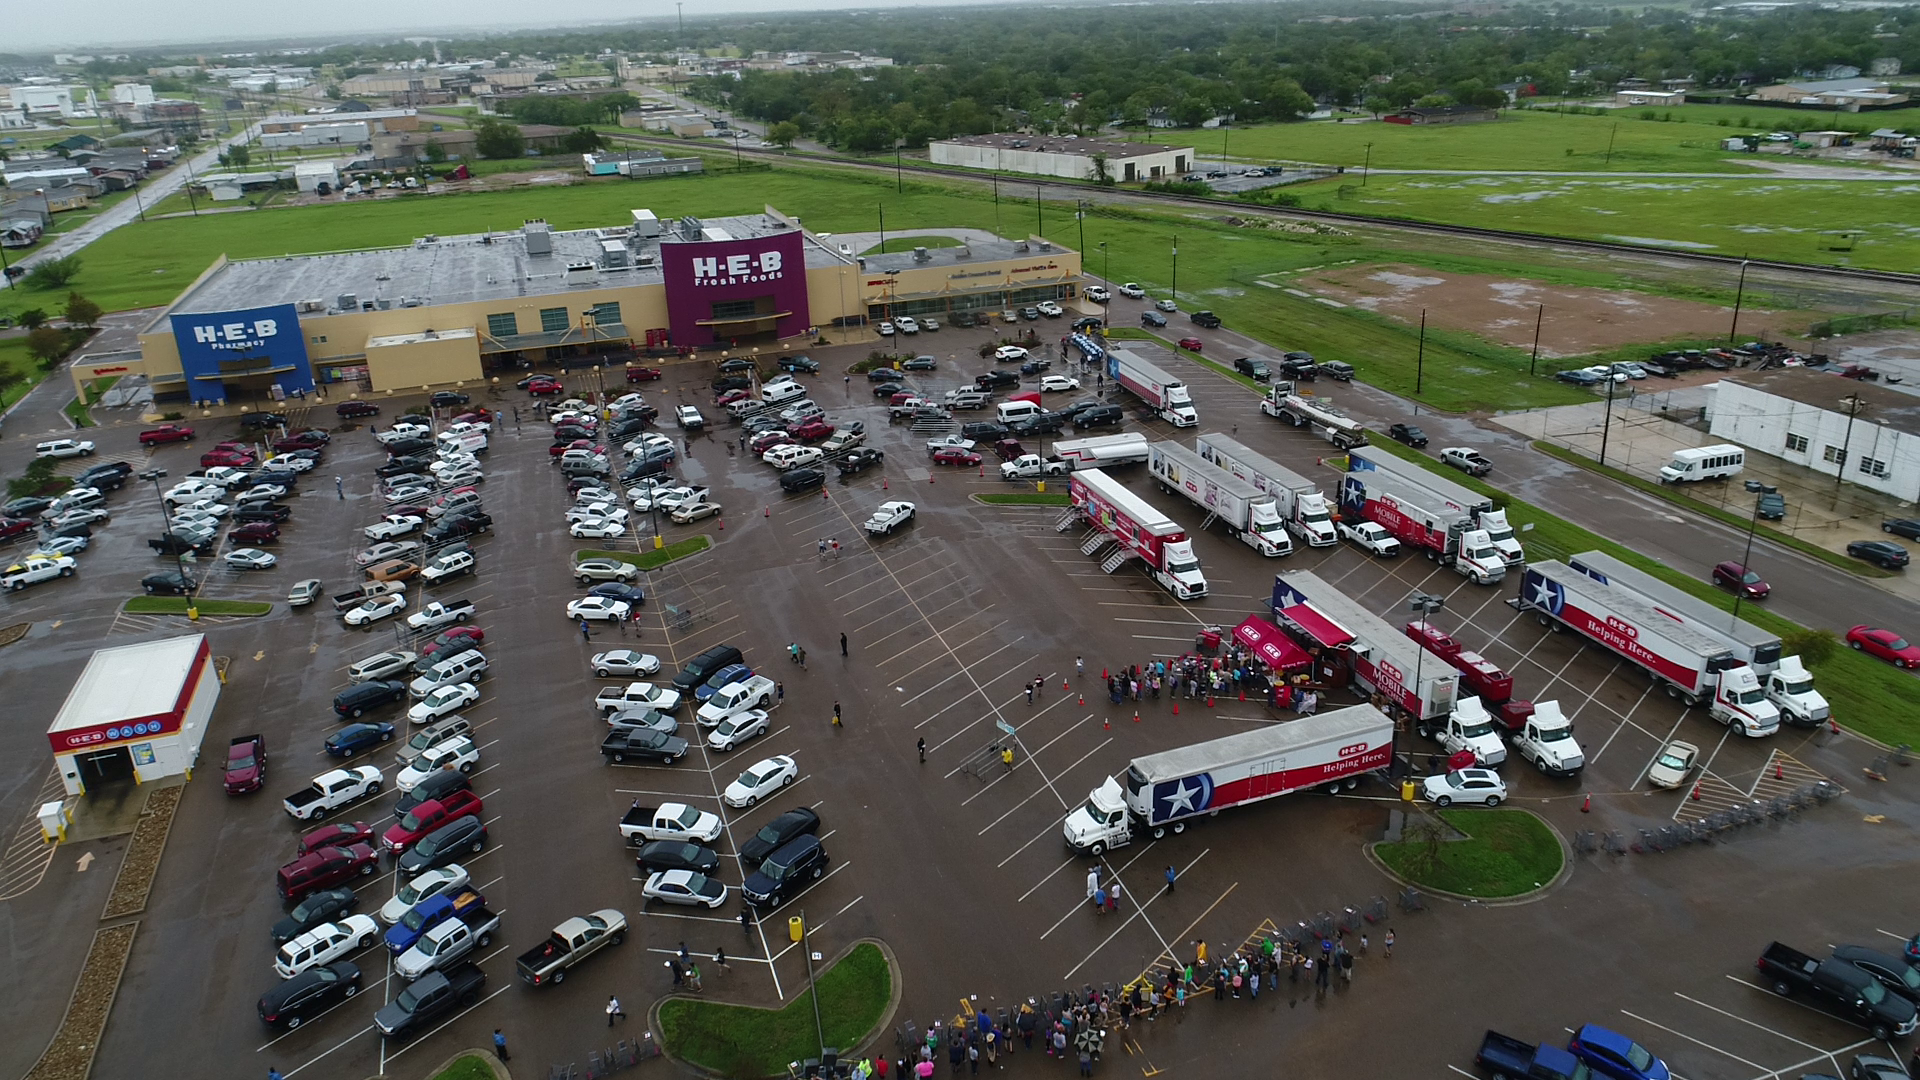 HEB Disaster Relief_534164